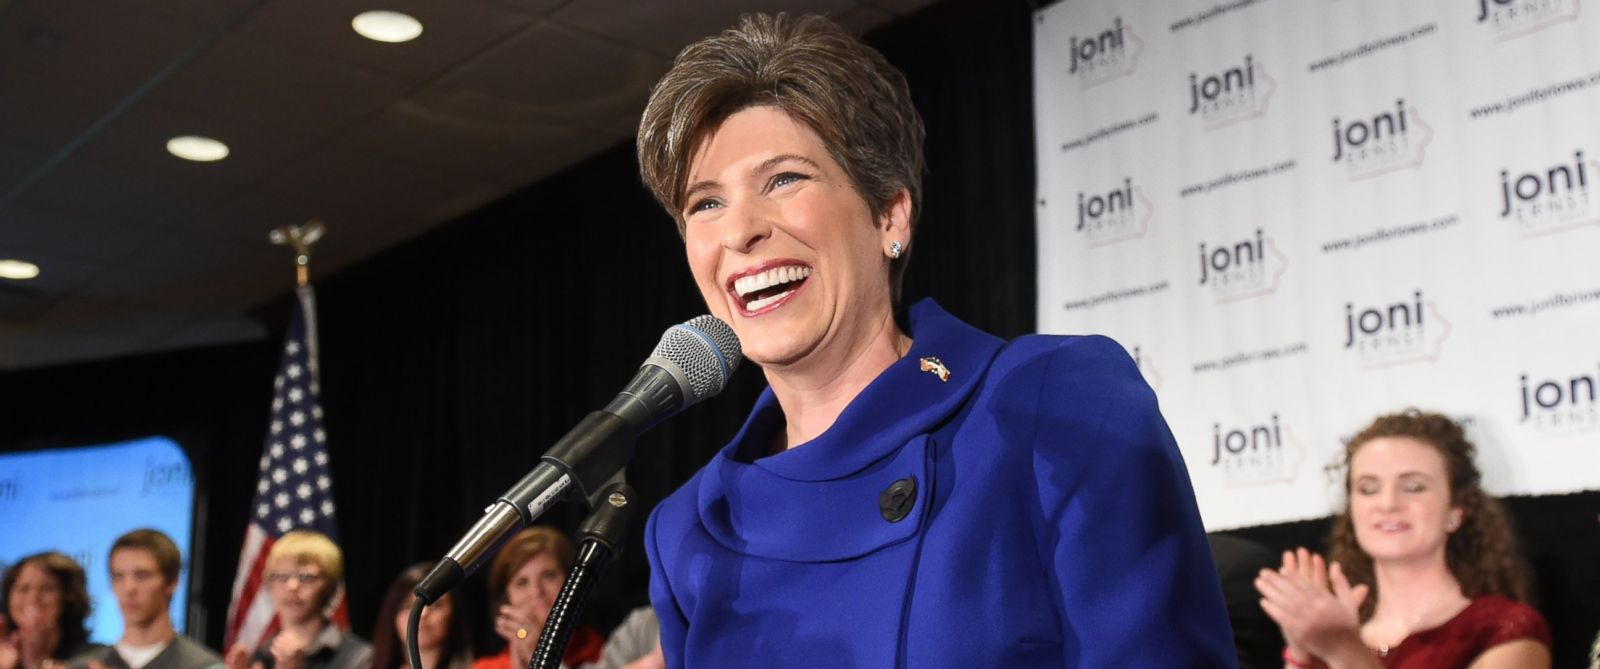 PHOTO: Newly elected Iowa Republican Senator Joni Ernst celebrates during her election night celebration party, in this Nov. 4, 2014, file photo, in West Des Moines, Iowa.